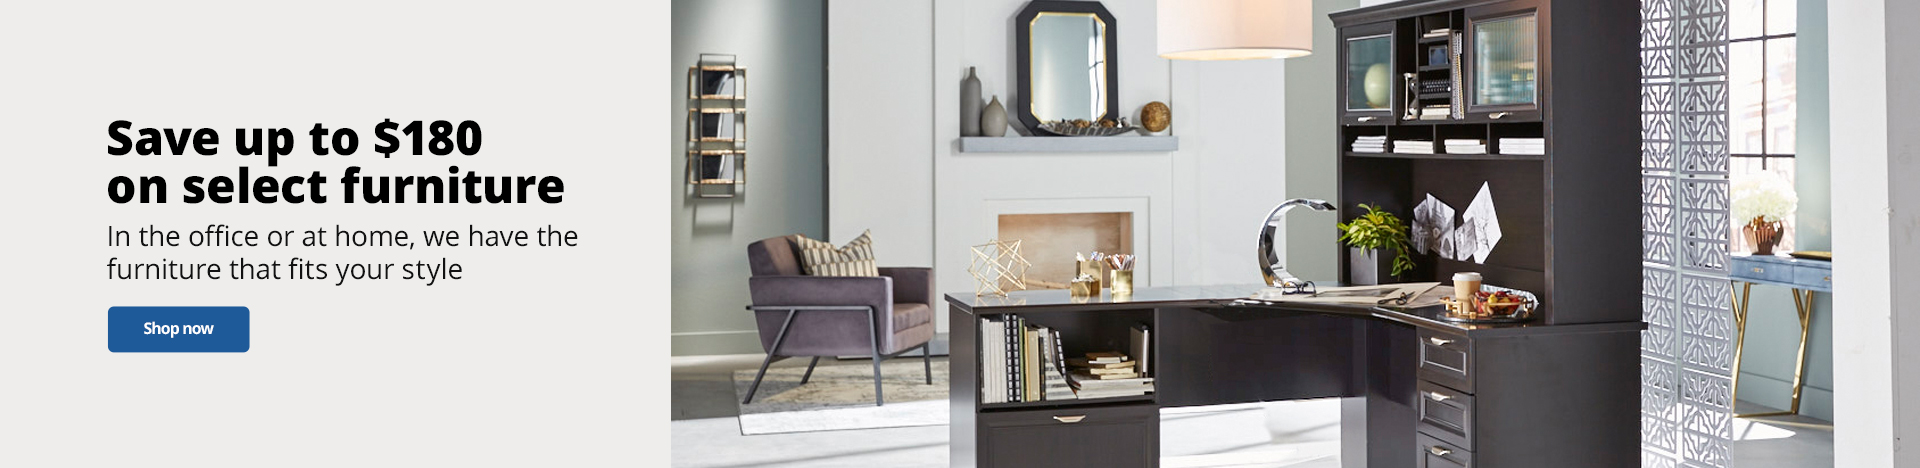 Save Up To $180 on select furniture